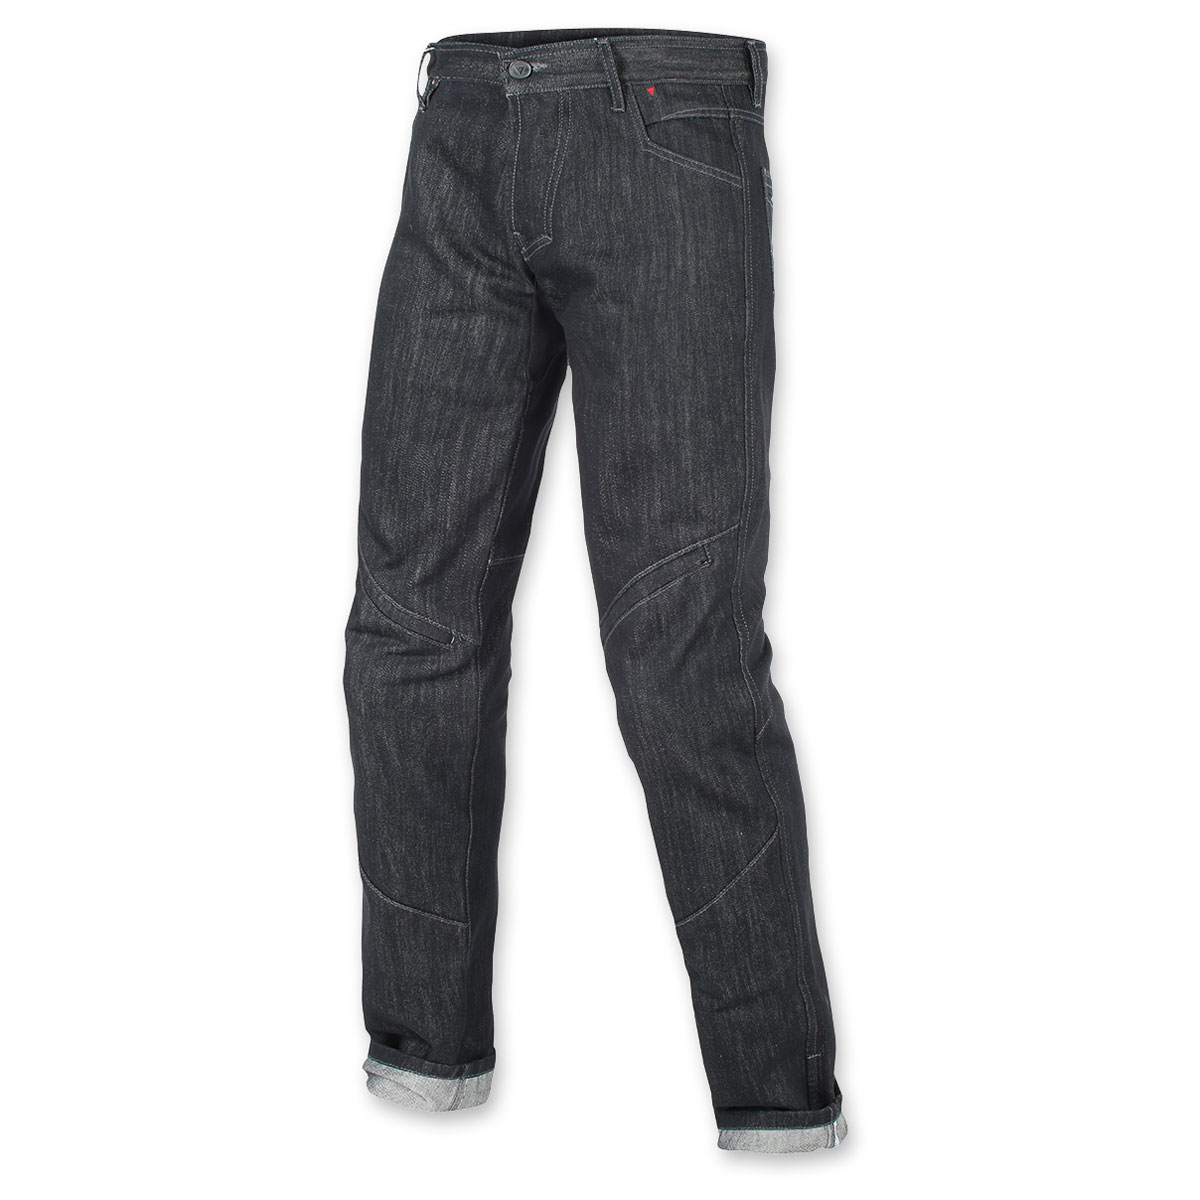 Dainese Men's Charger Black Jeans